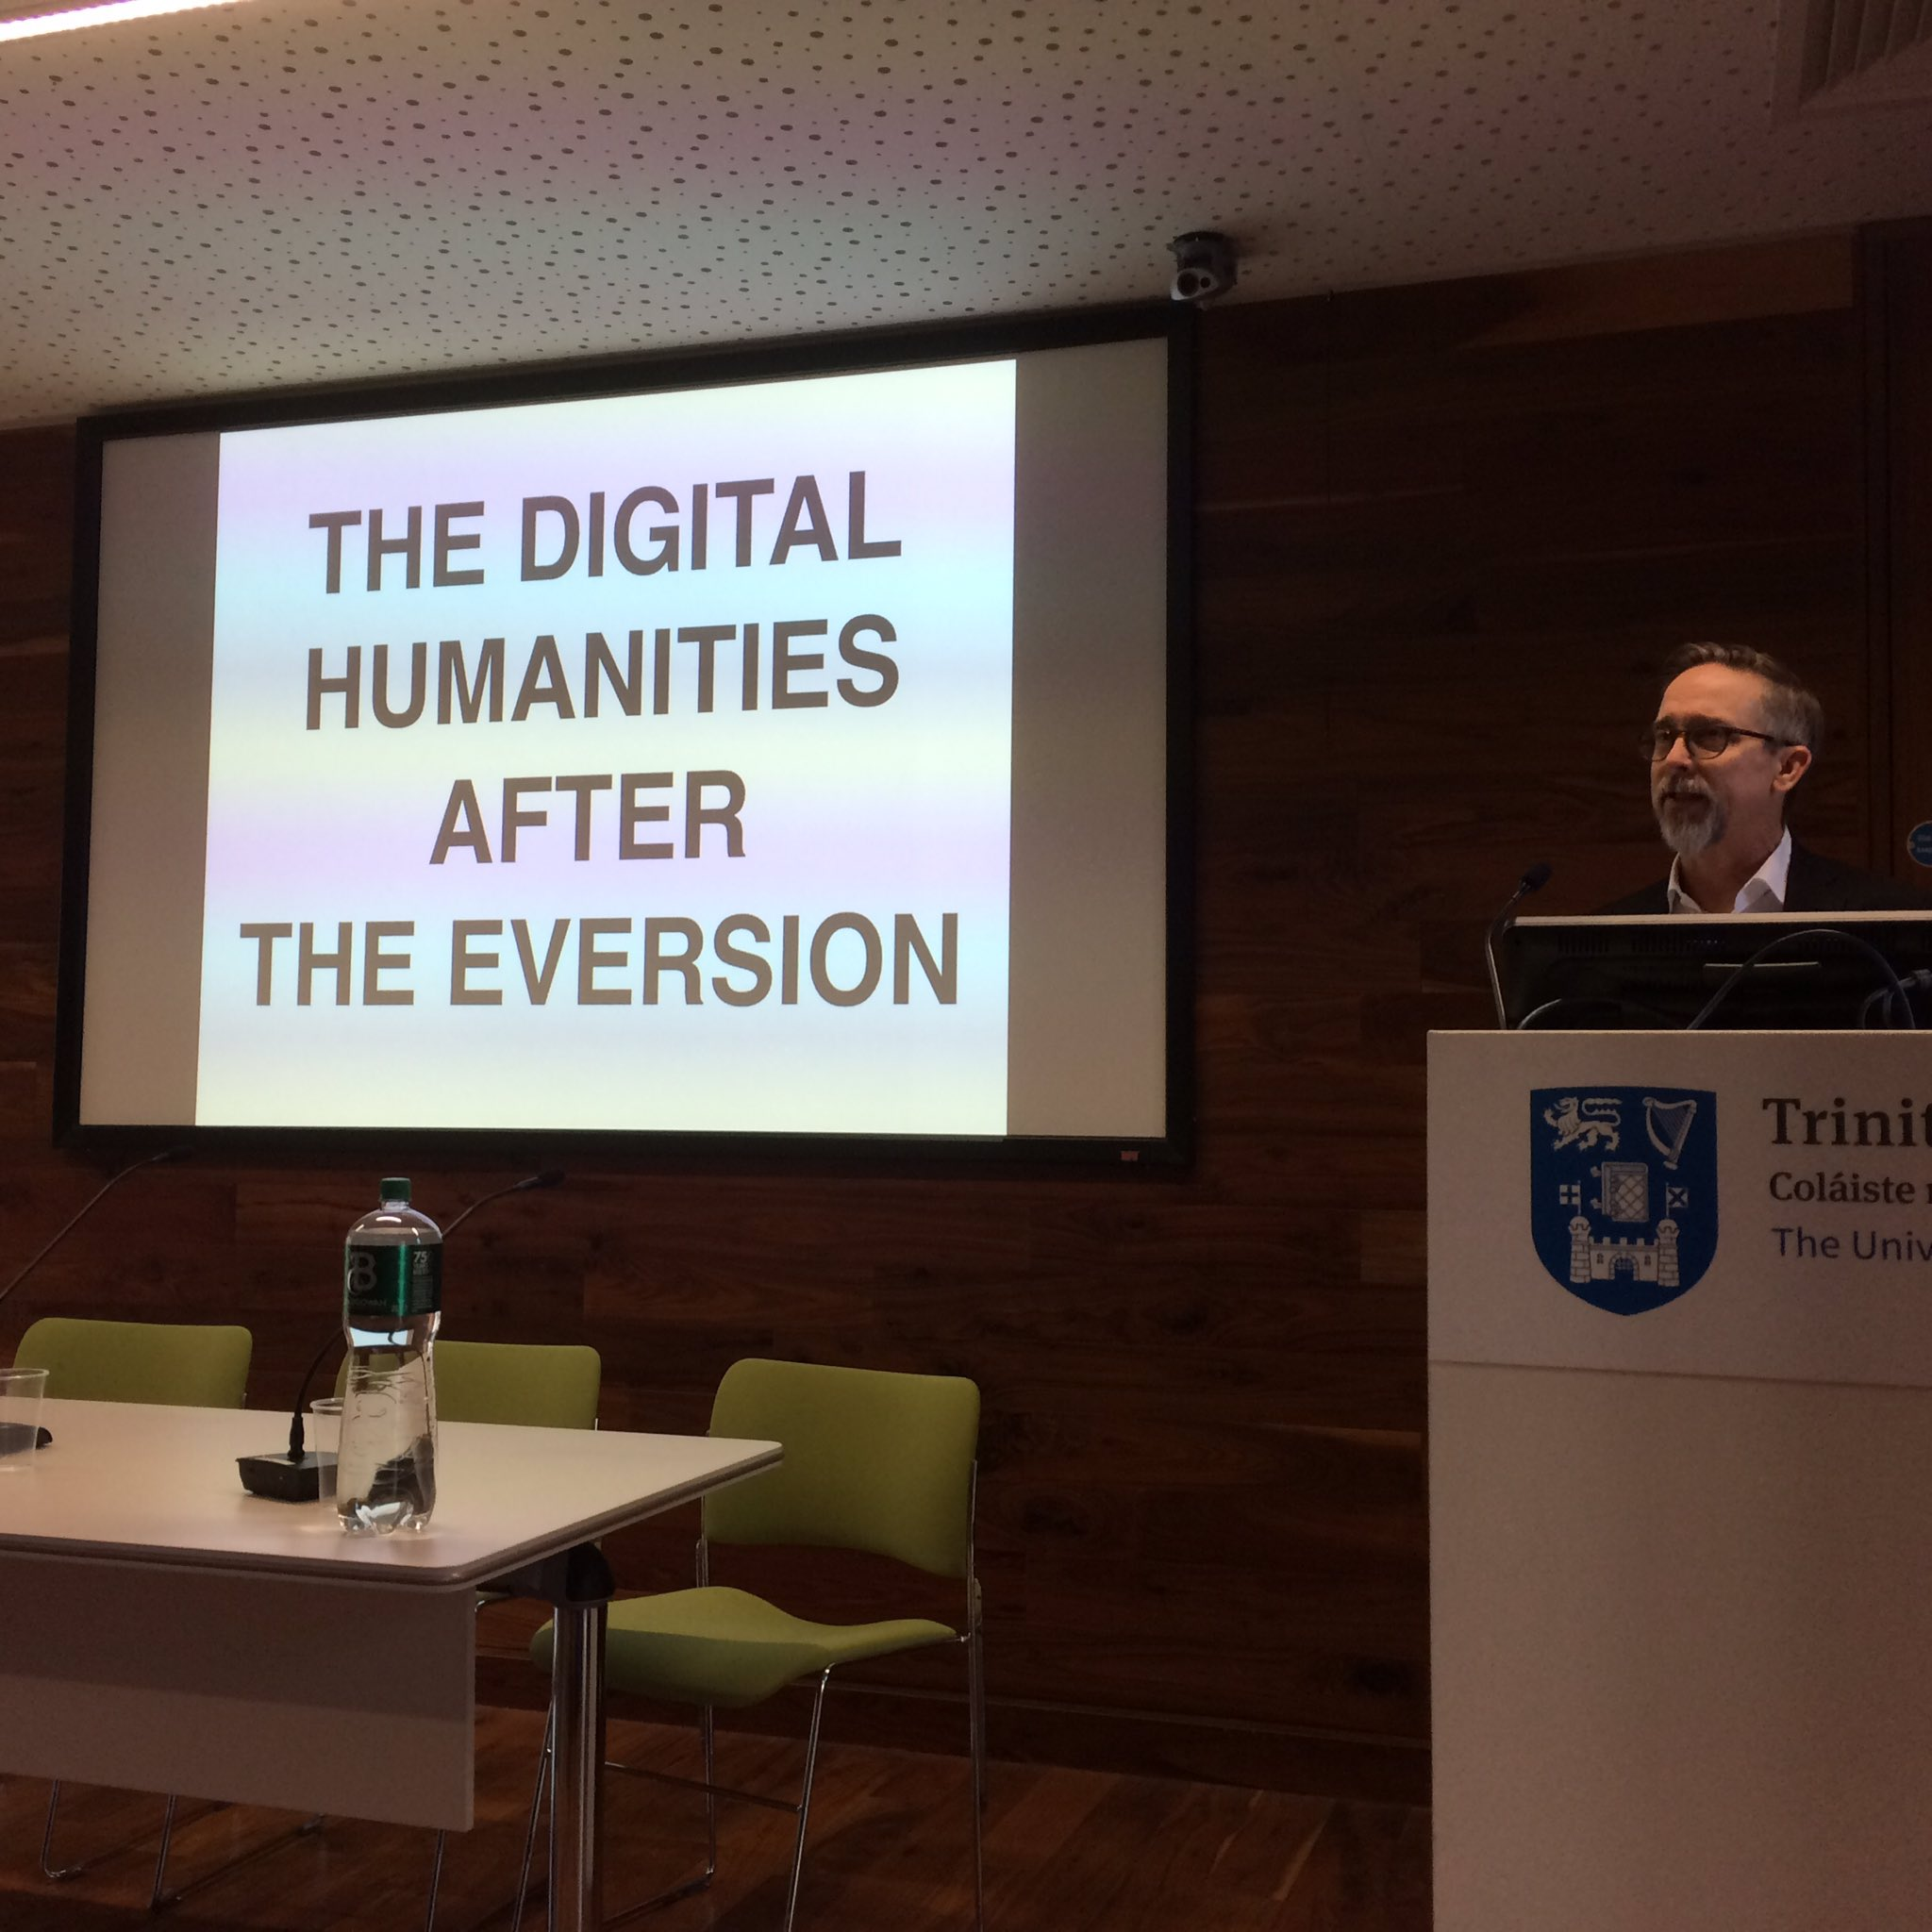 ".@s3jones giving opening keynote talk 'The Digital Humanities after the ""Eversion""' at DAH Digital Conference #dahphdie https://t.co/hvfRy1VA0a"